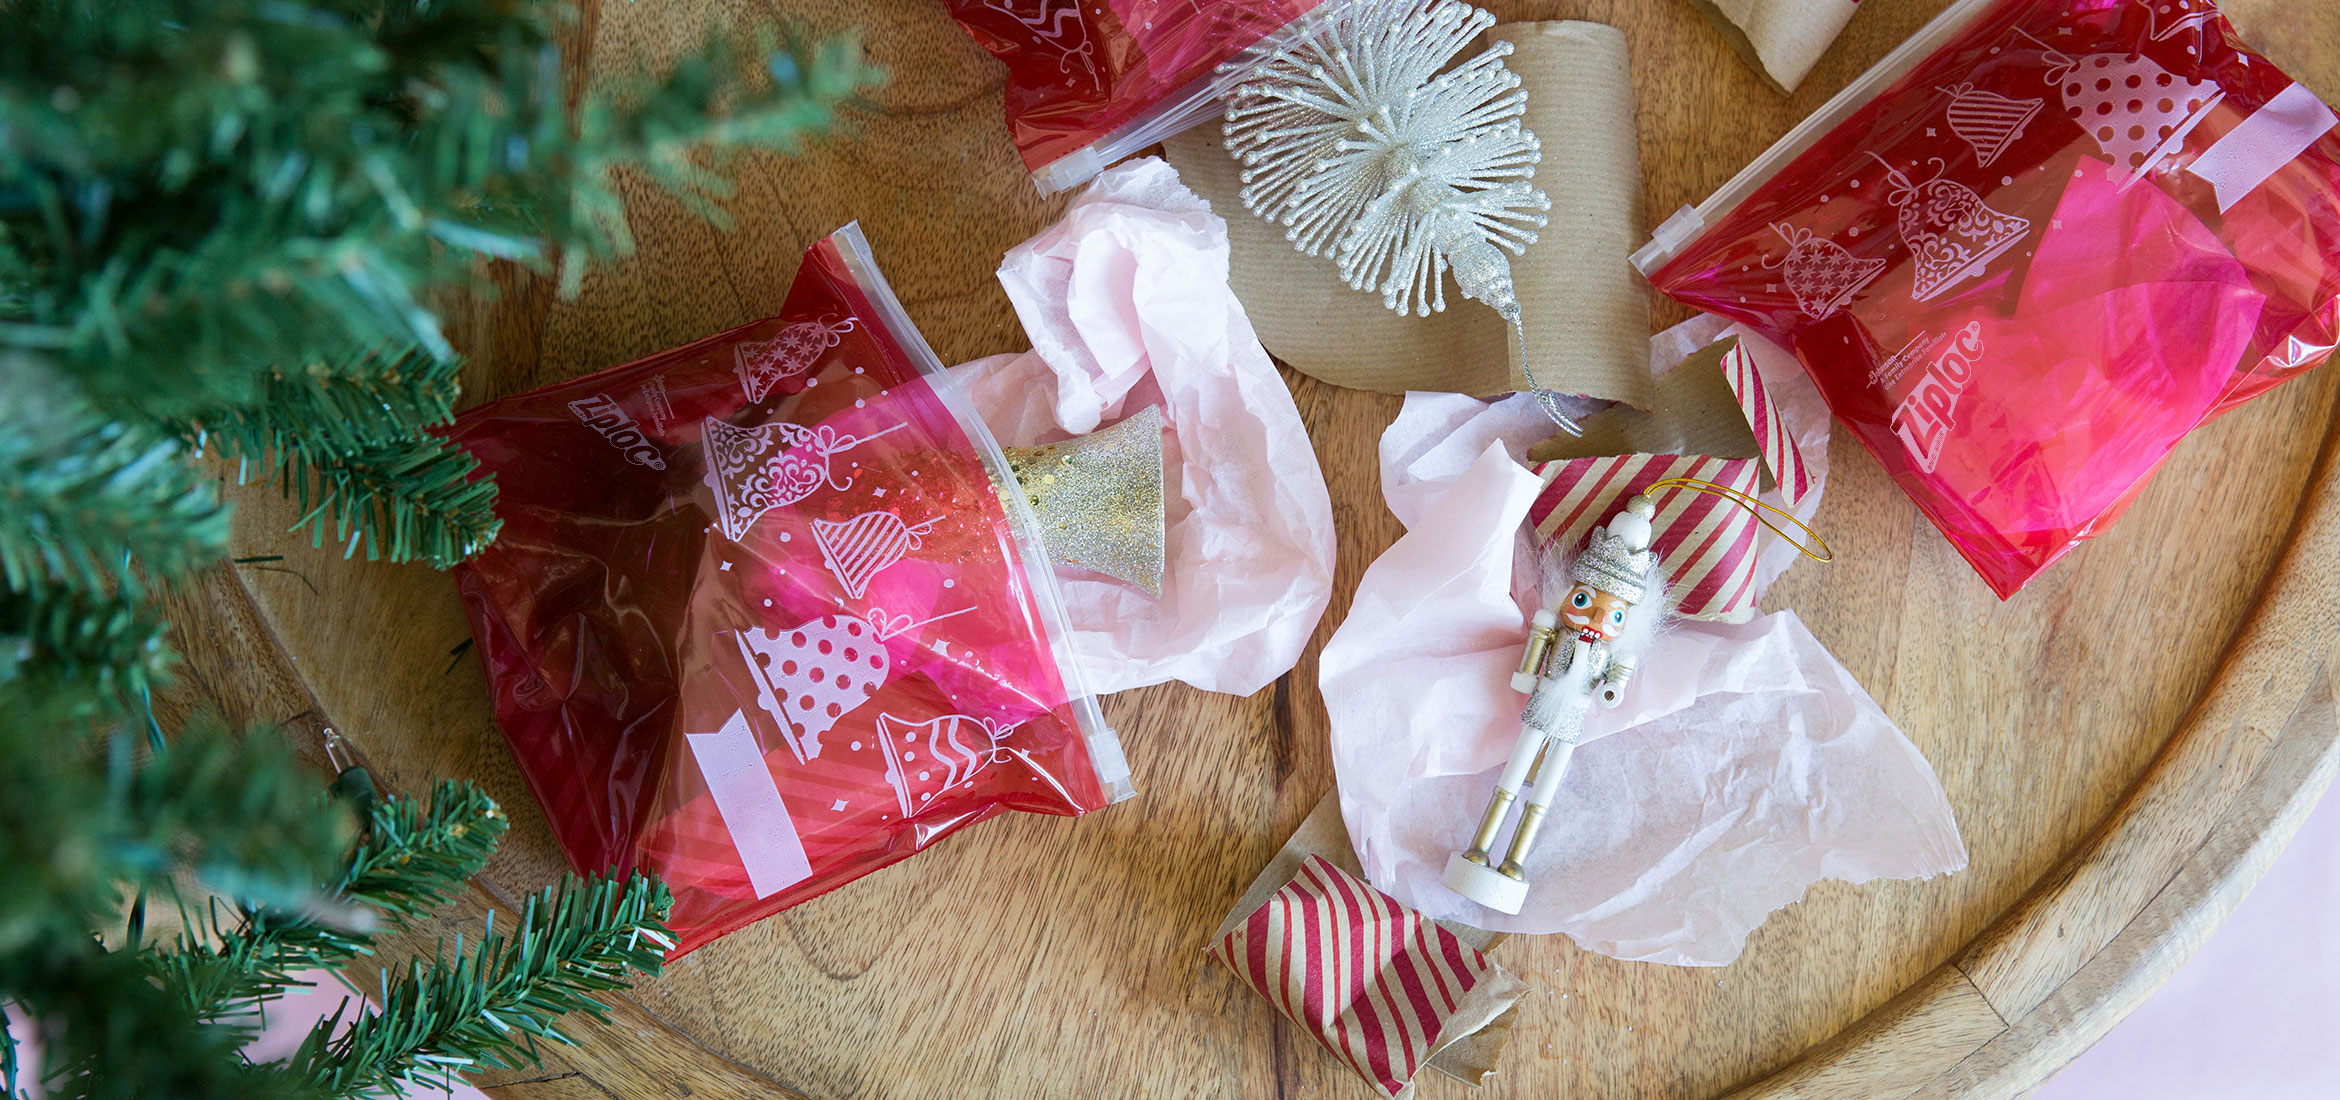 Pack, Protect and Store Your Holiday Decor